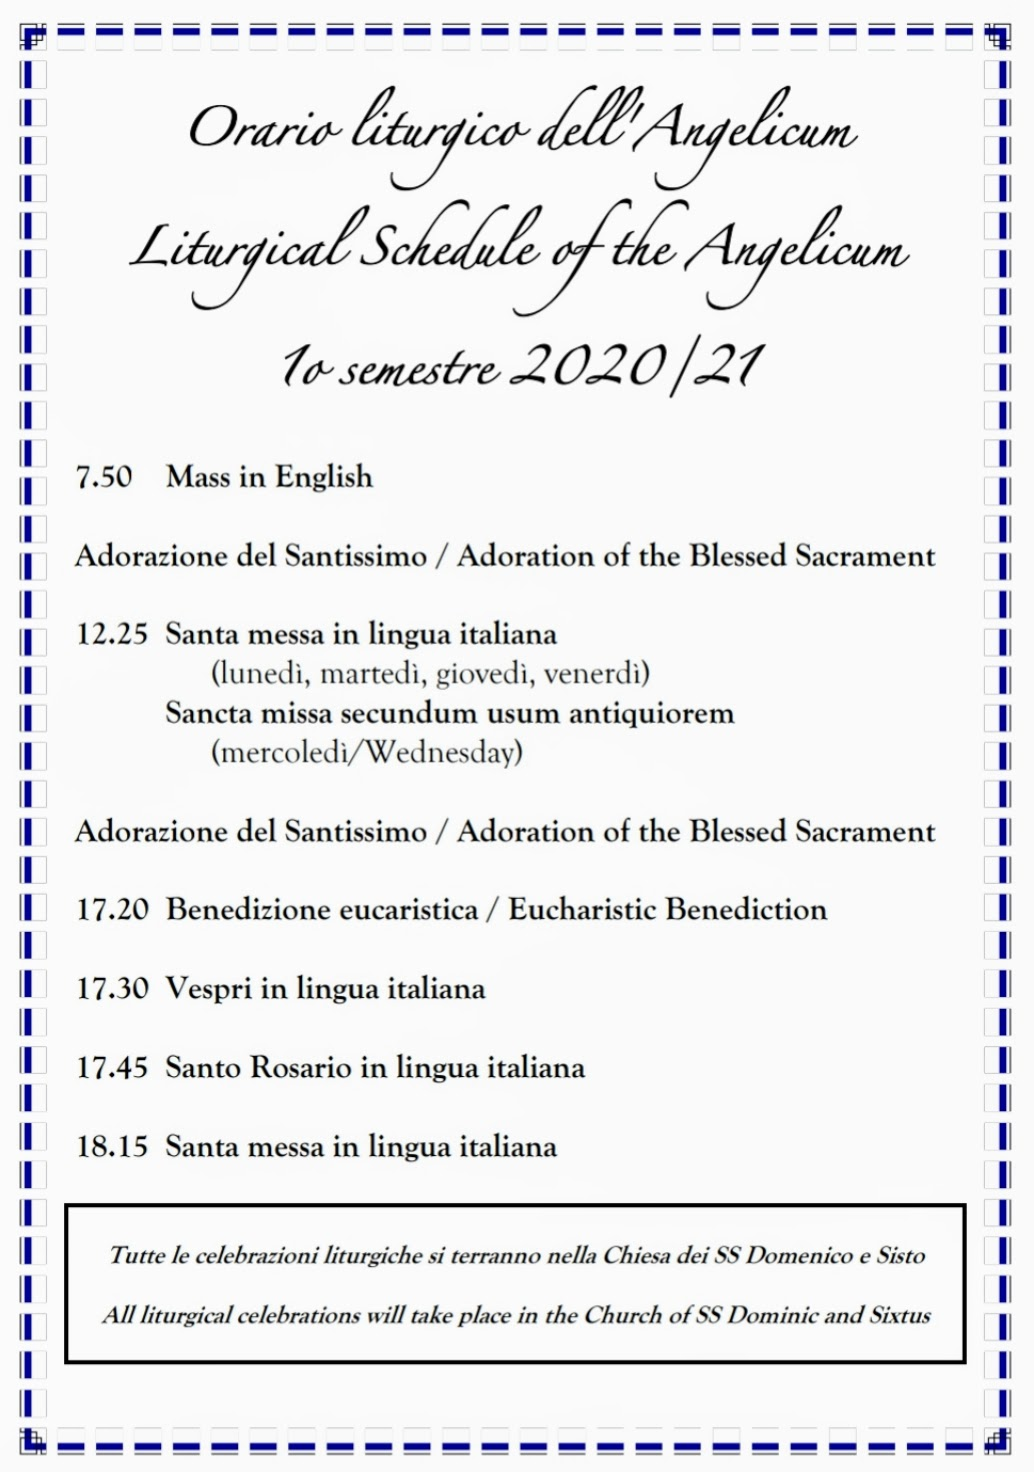 Liturgical Plan for the Fall Semester 2020 Angelicum